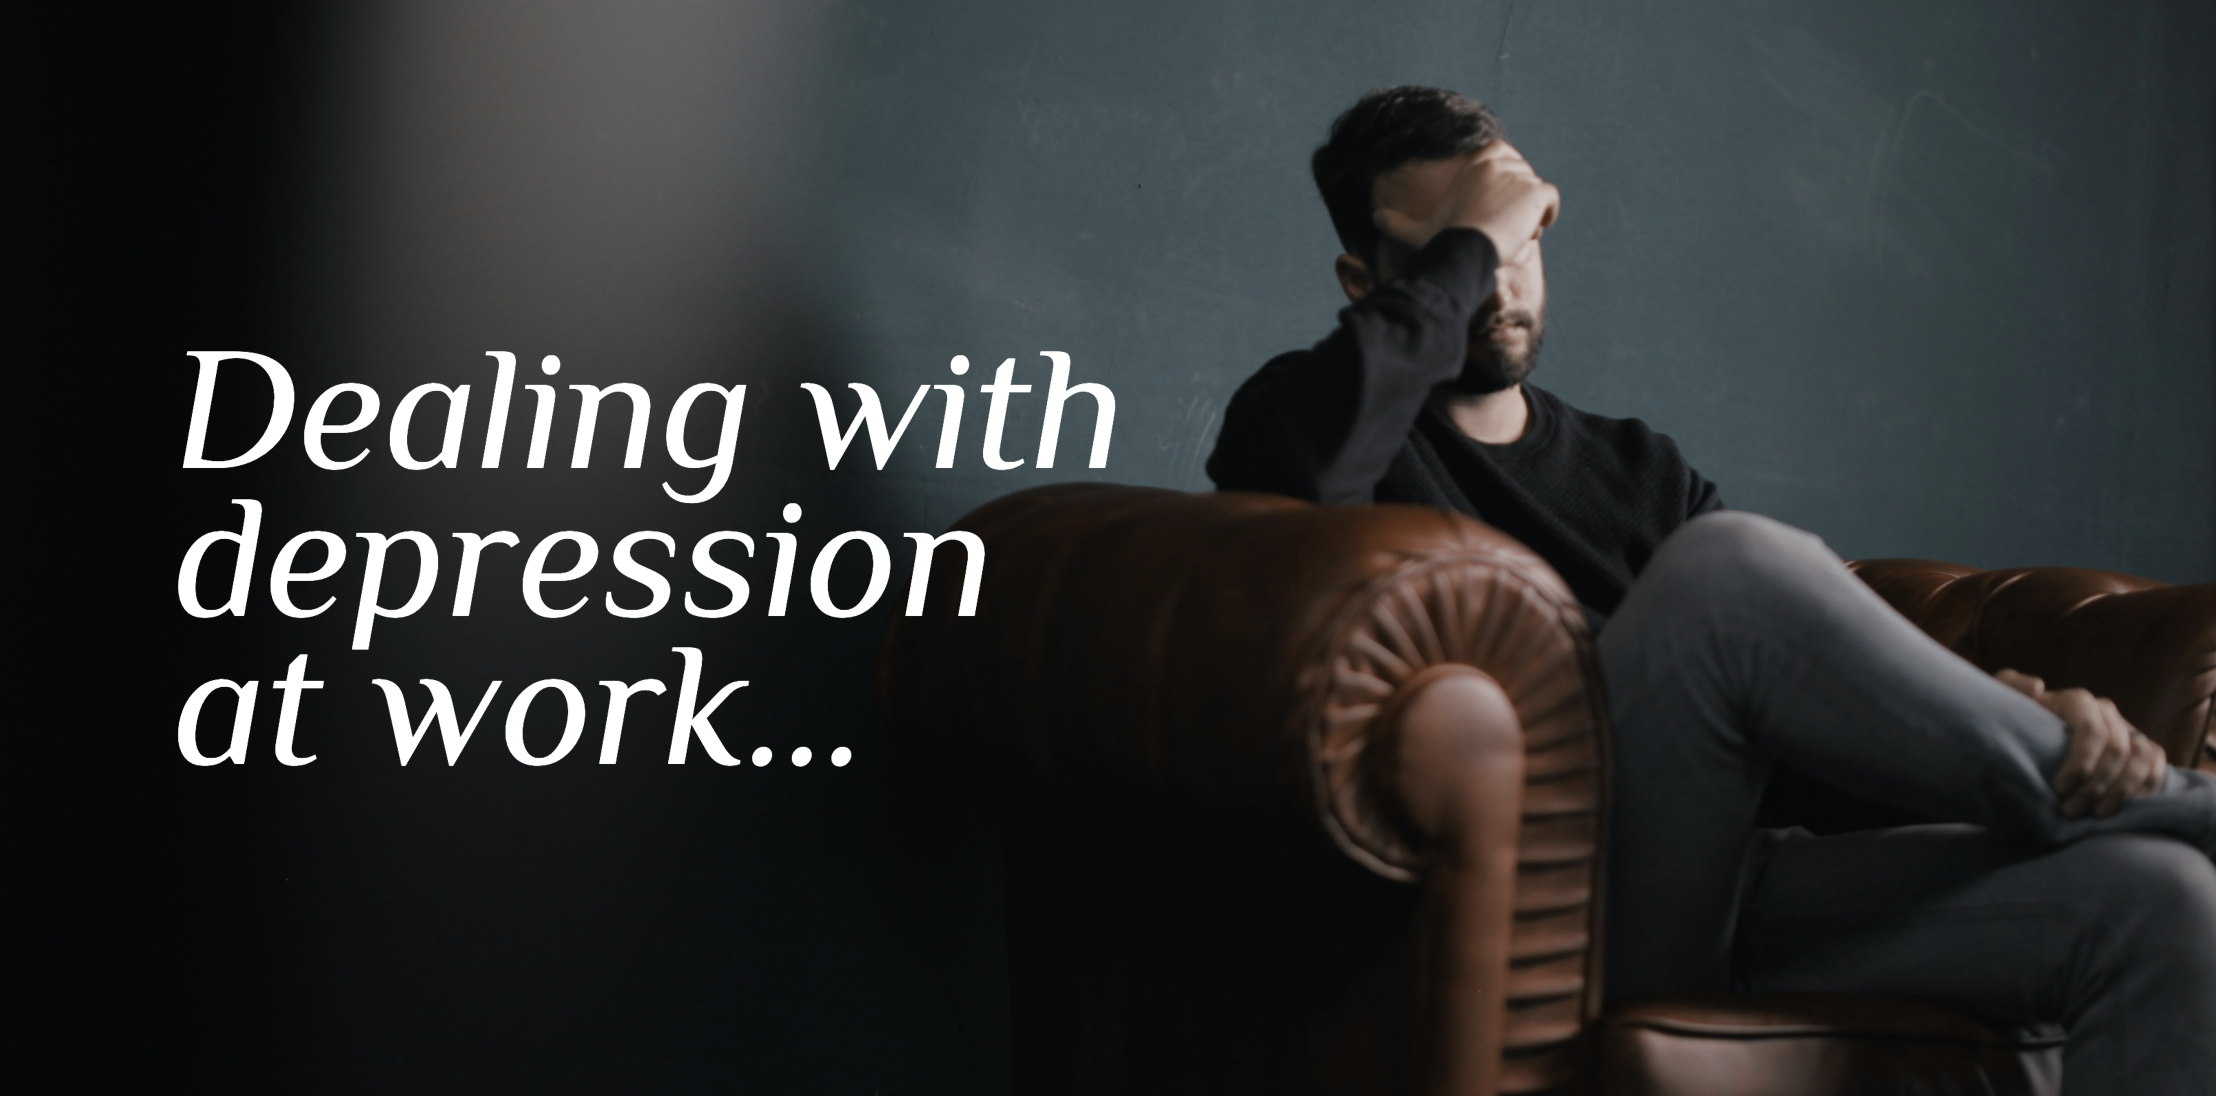 How to Fight Depression at Work if you Can't Take Time Off